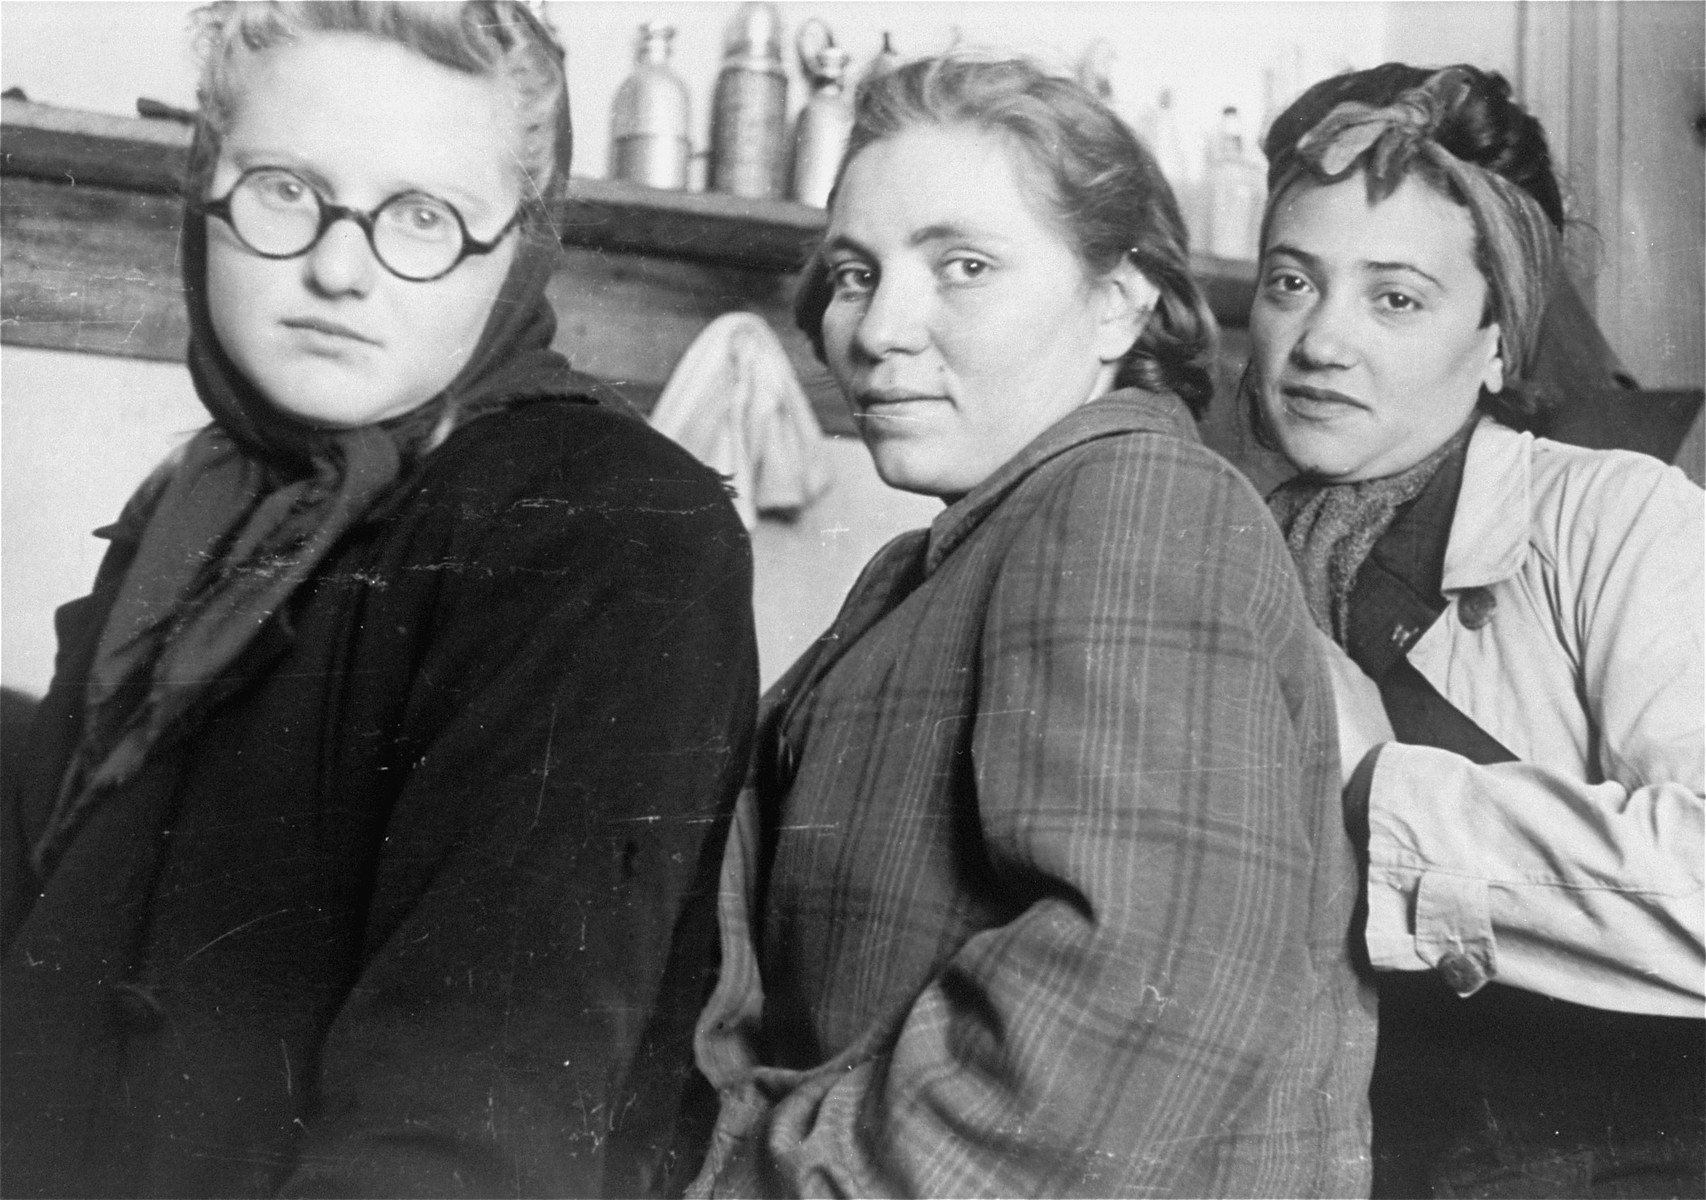 Local Jewish women, photographed by Jewish conscripts in Company 108/57 of the Hungarian Labor Service.